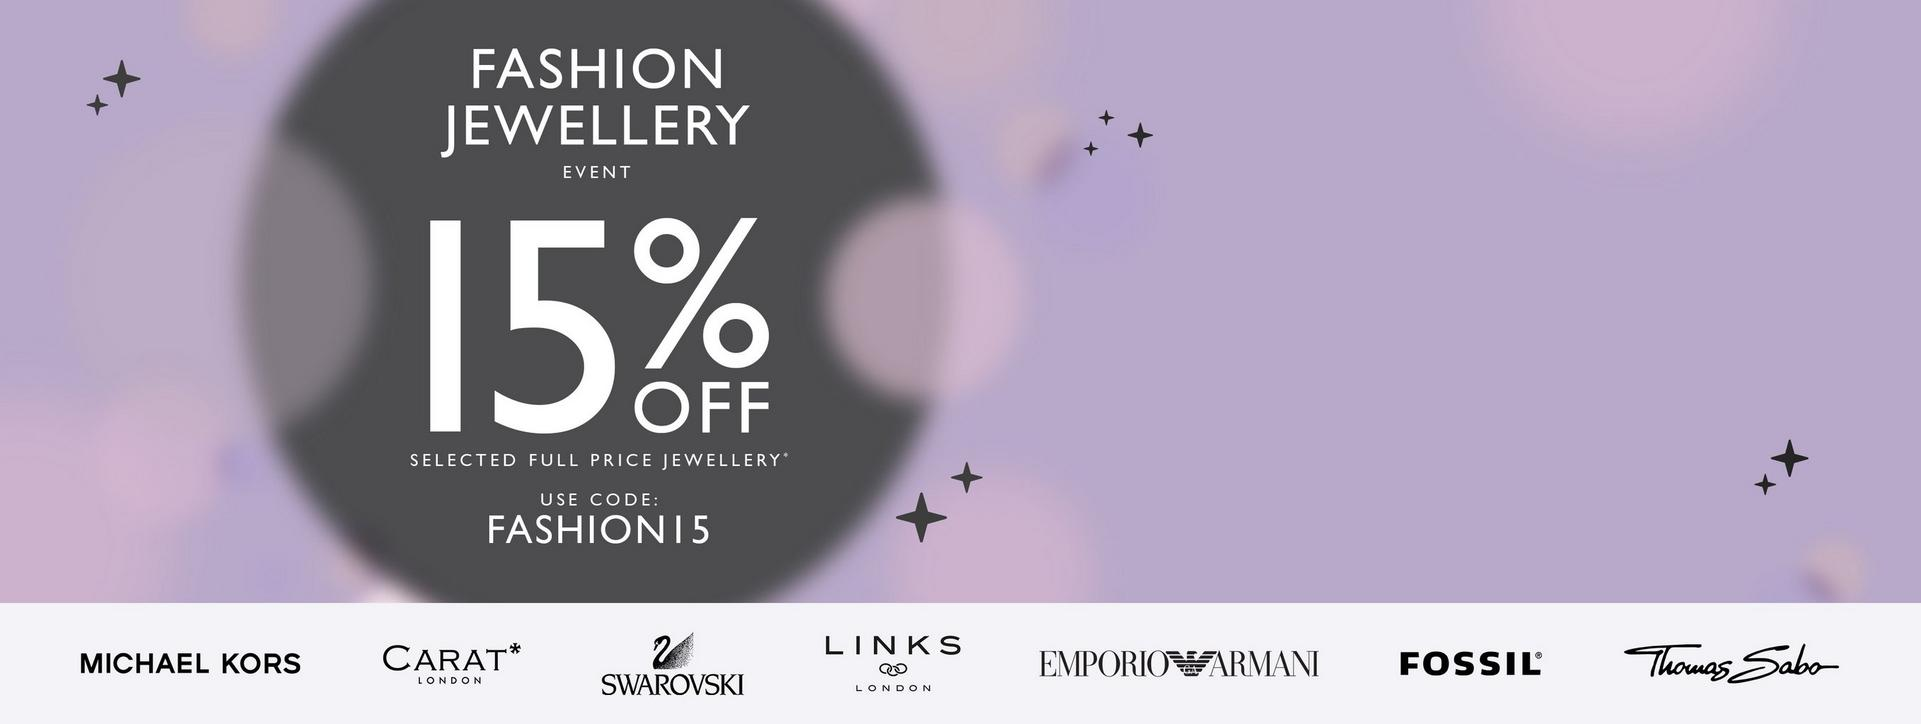 Get 15% off full price jewellery from famous fashion brands with code FASHION15 at Ernest Jones